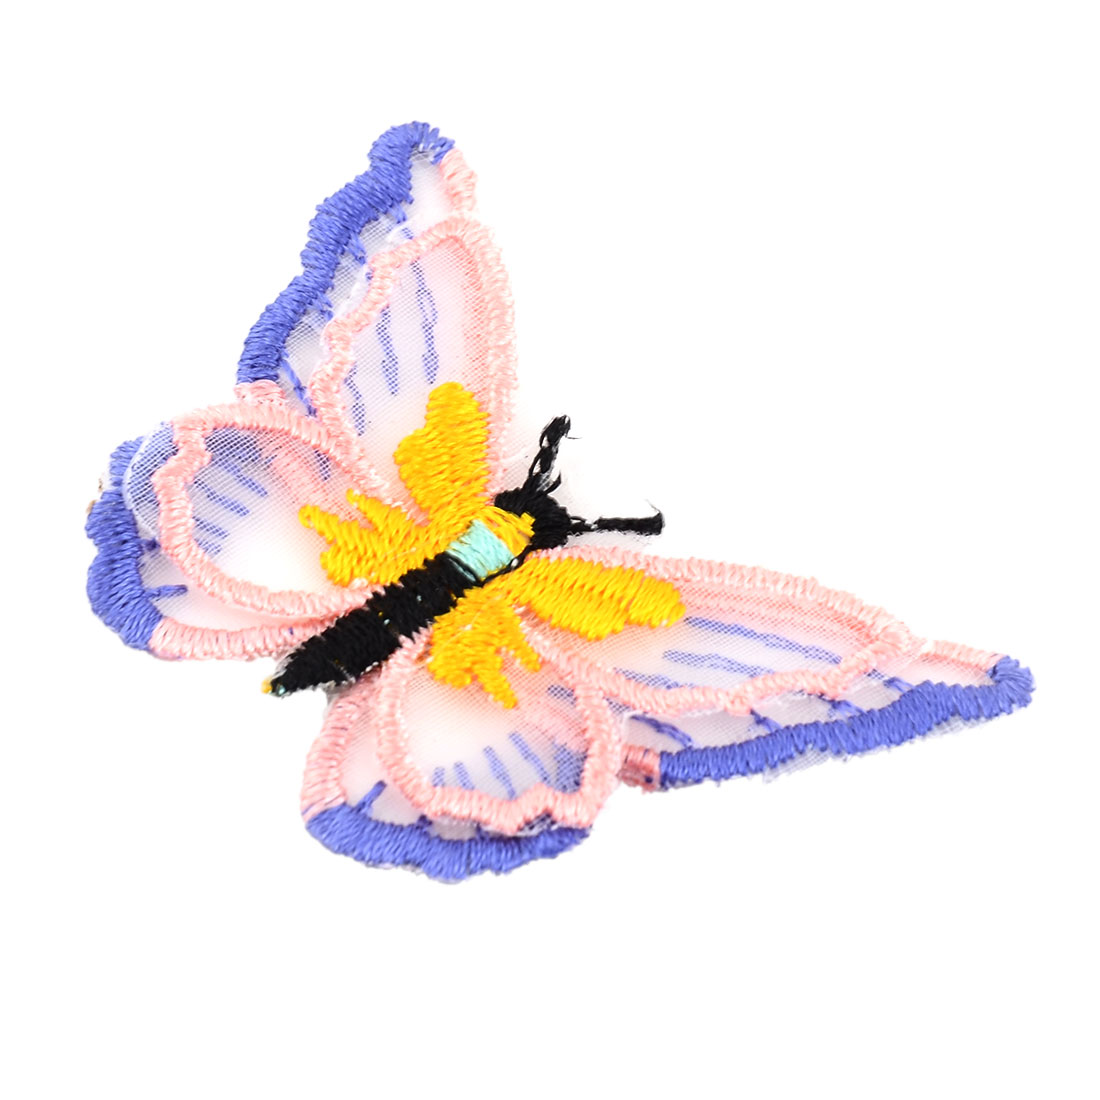 Unique Bargains Polyester Butterfly Design Embroidery DIY Sewing Clothes Decor Lace Applique